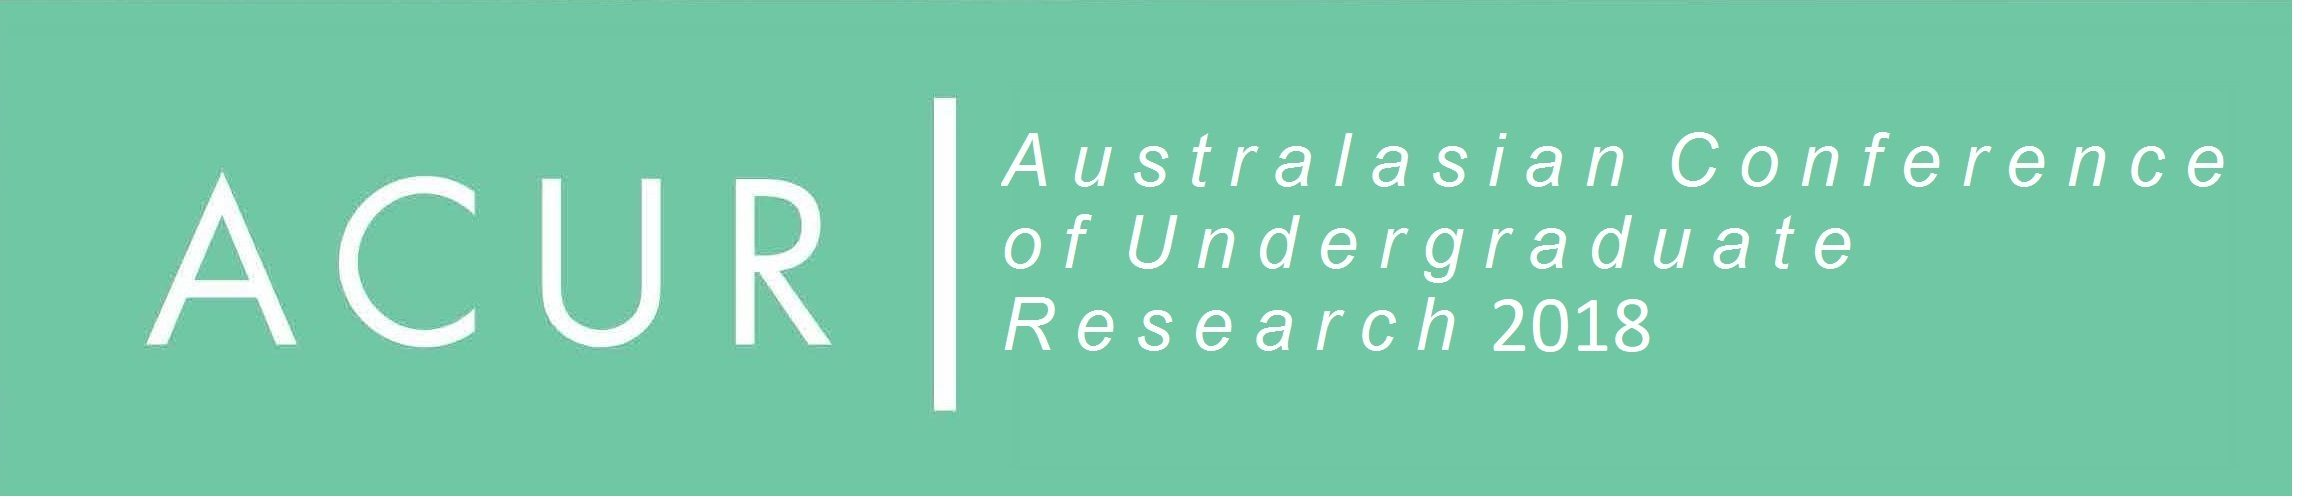 Australasian Conference on Undergraduate Research Logo